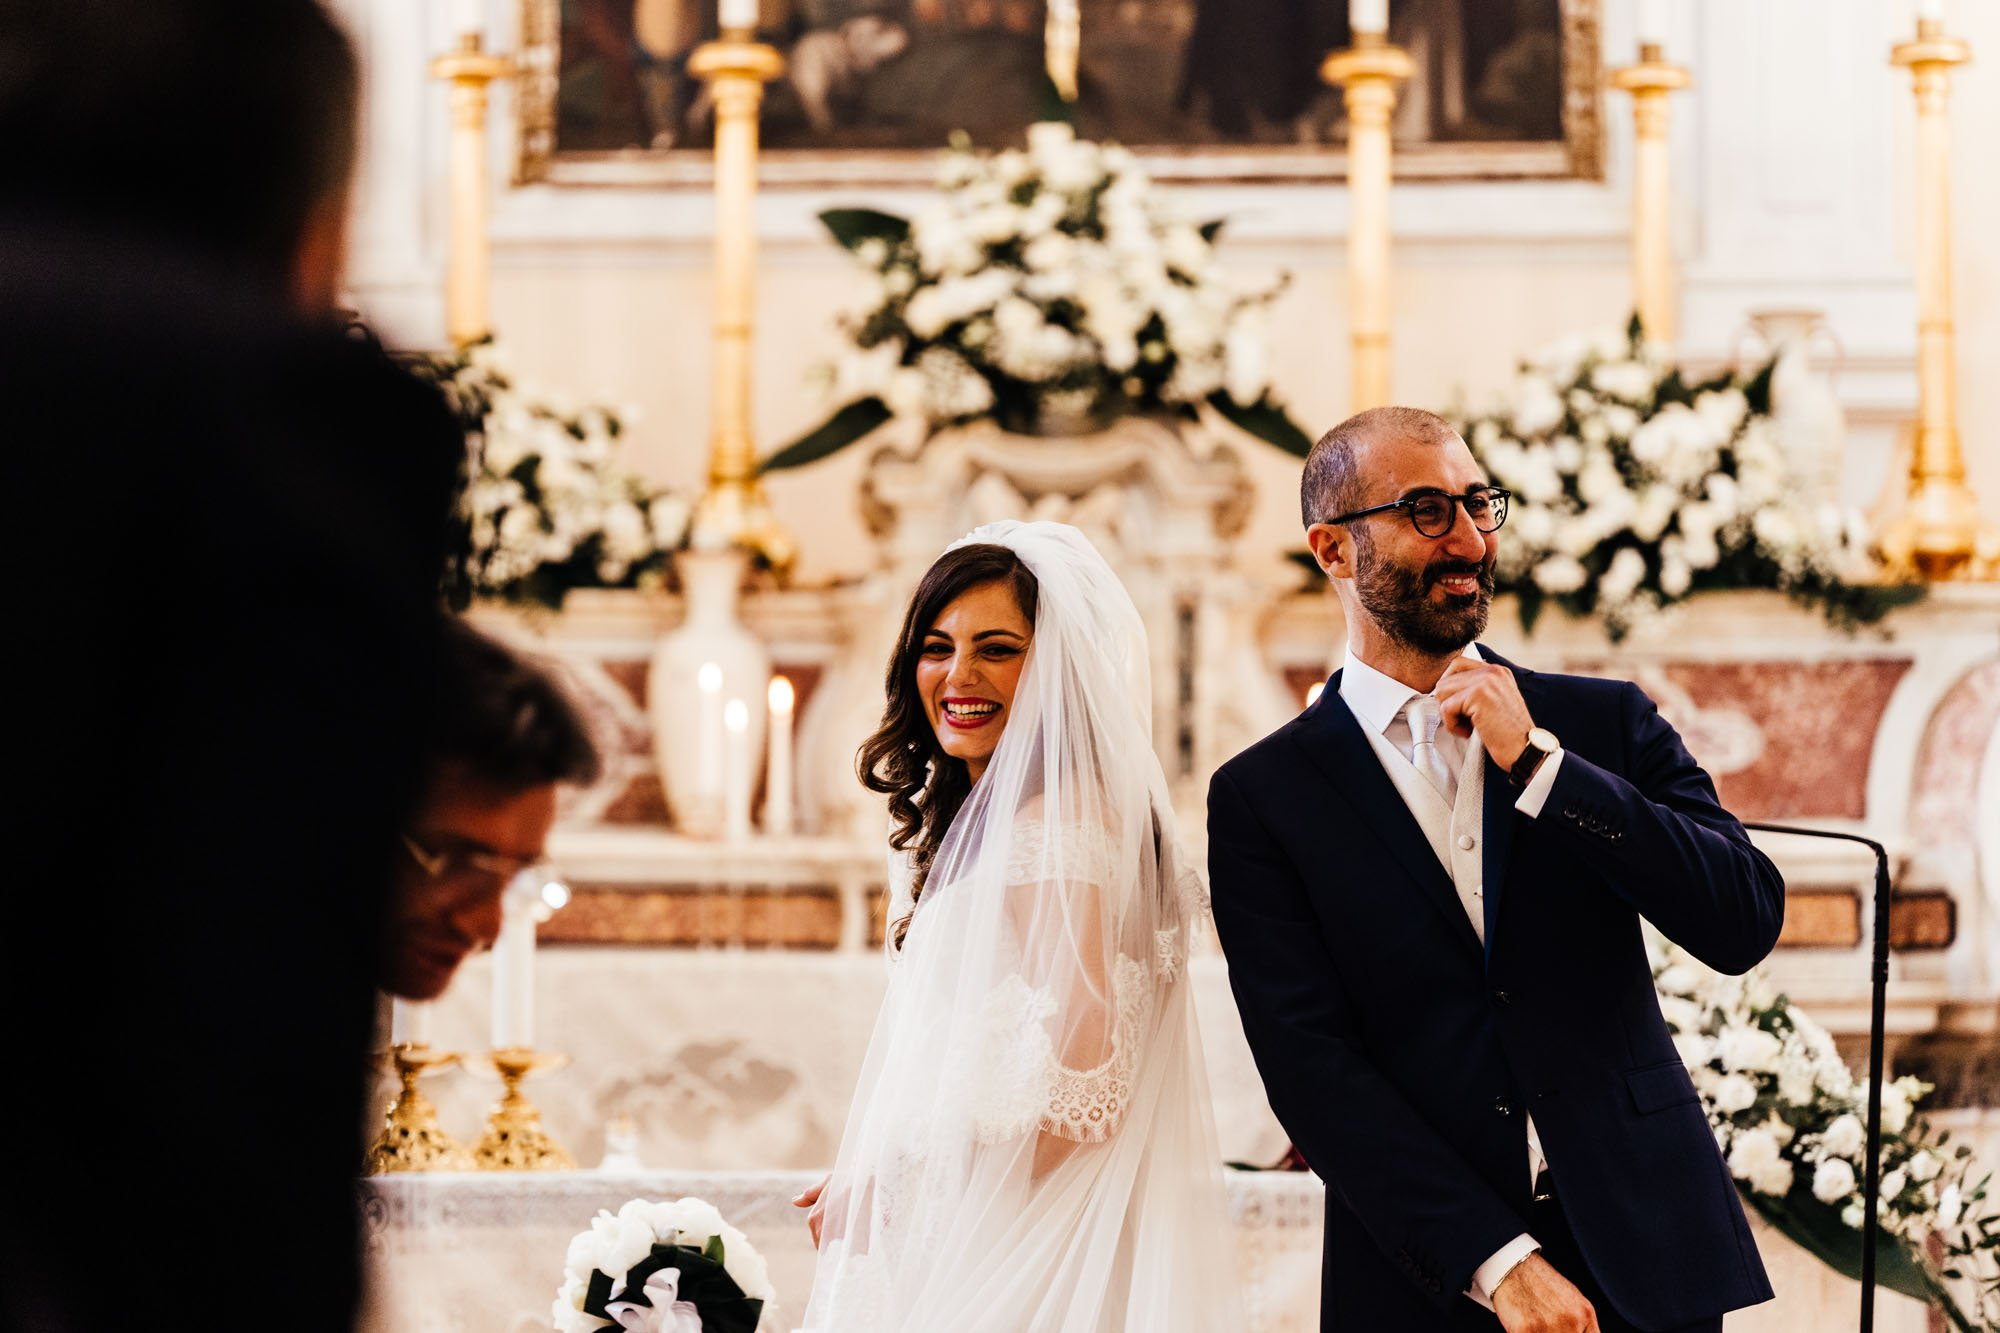 wedding-in-italy-mary-mimmo-23